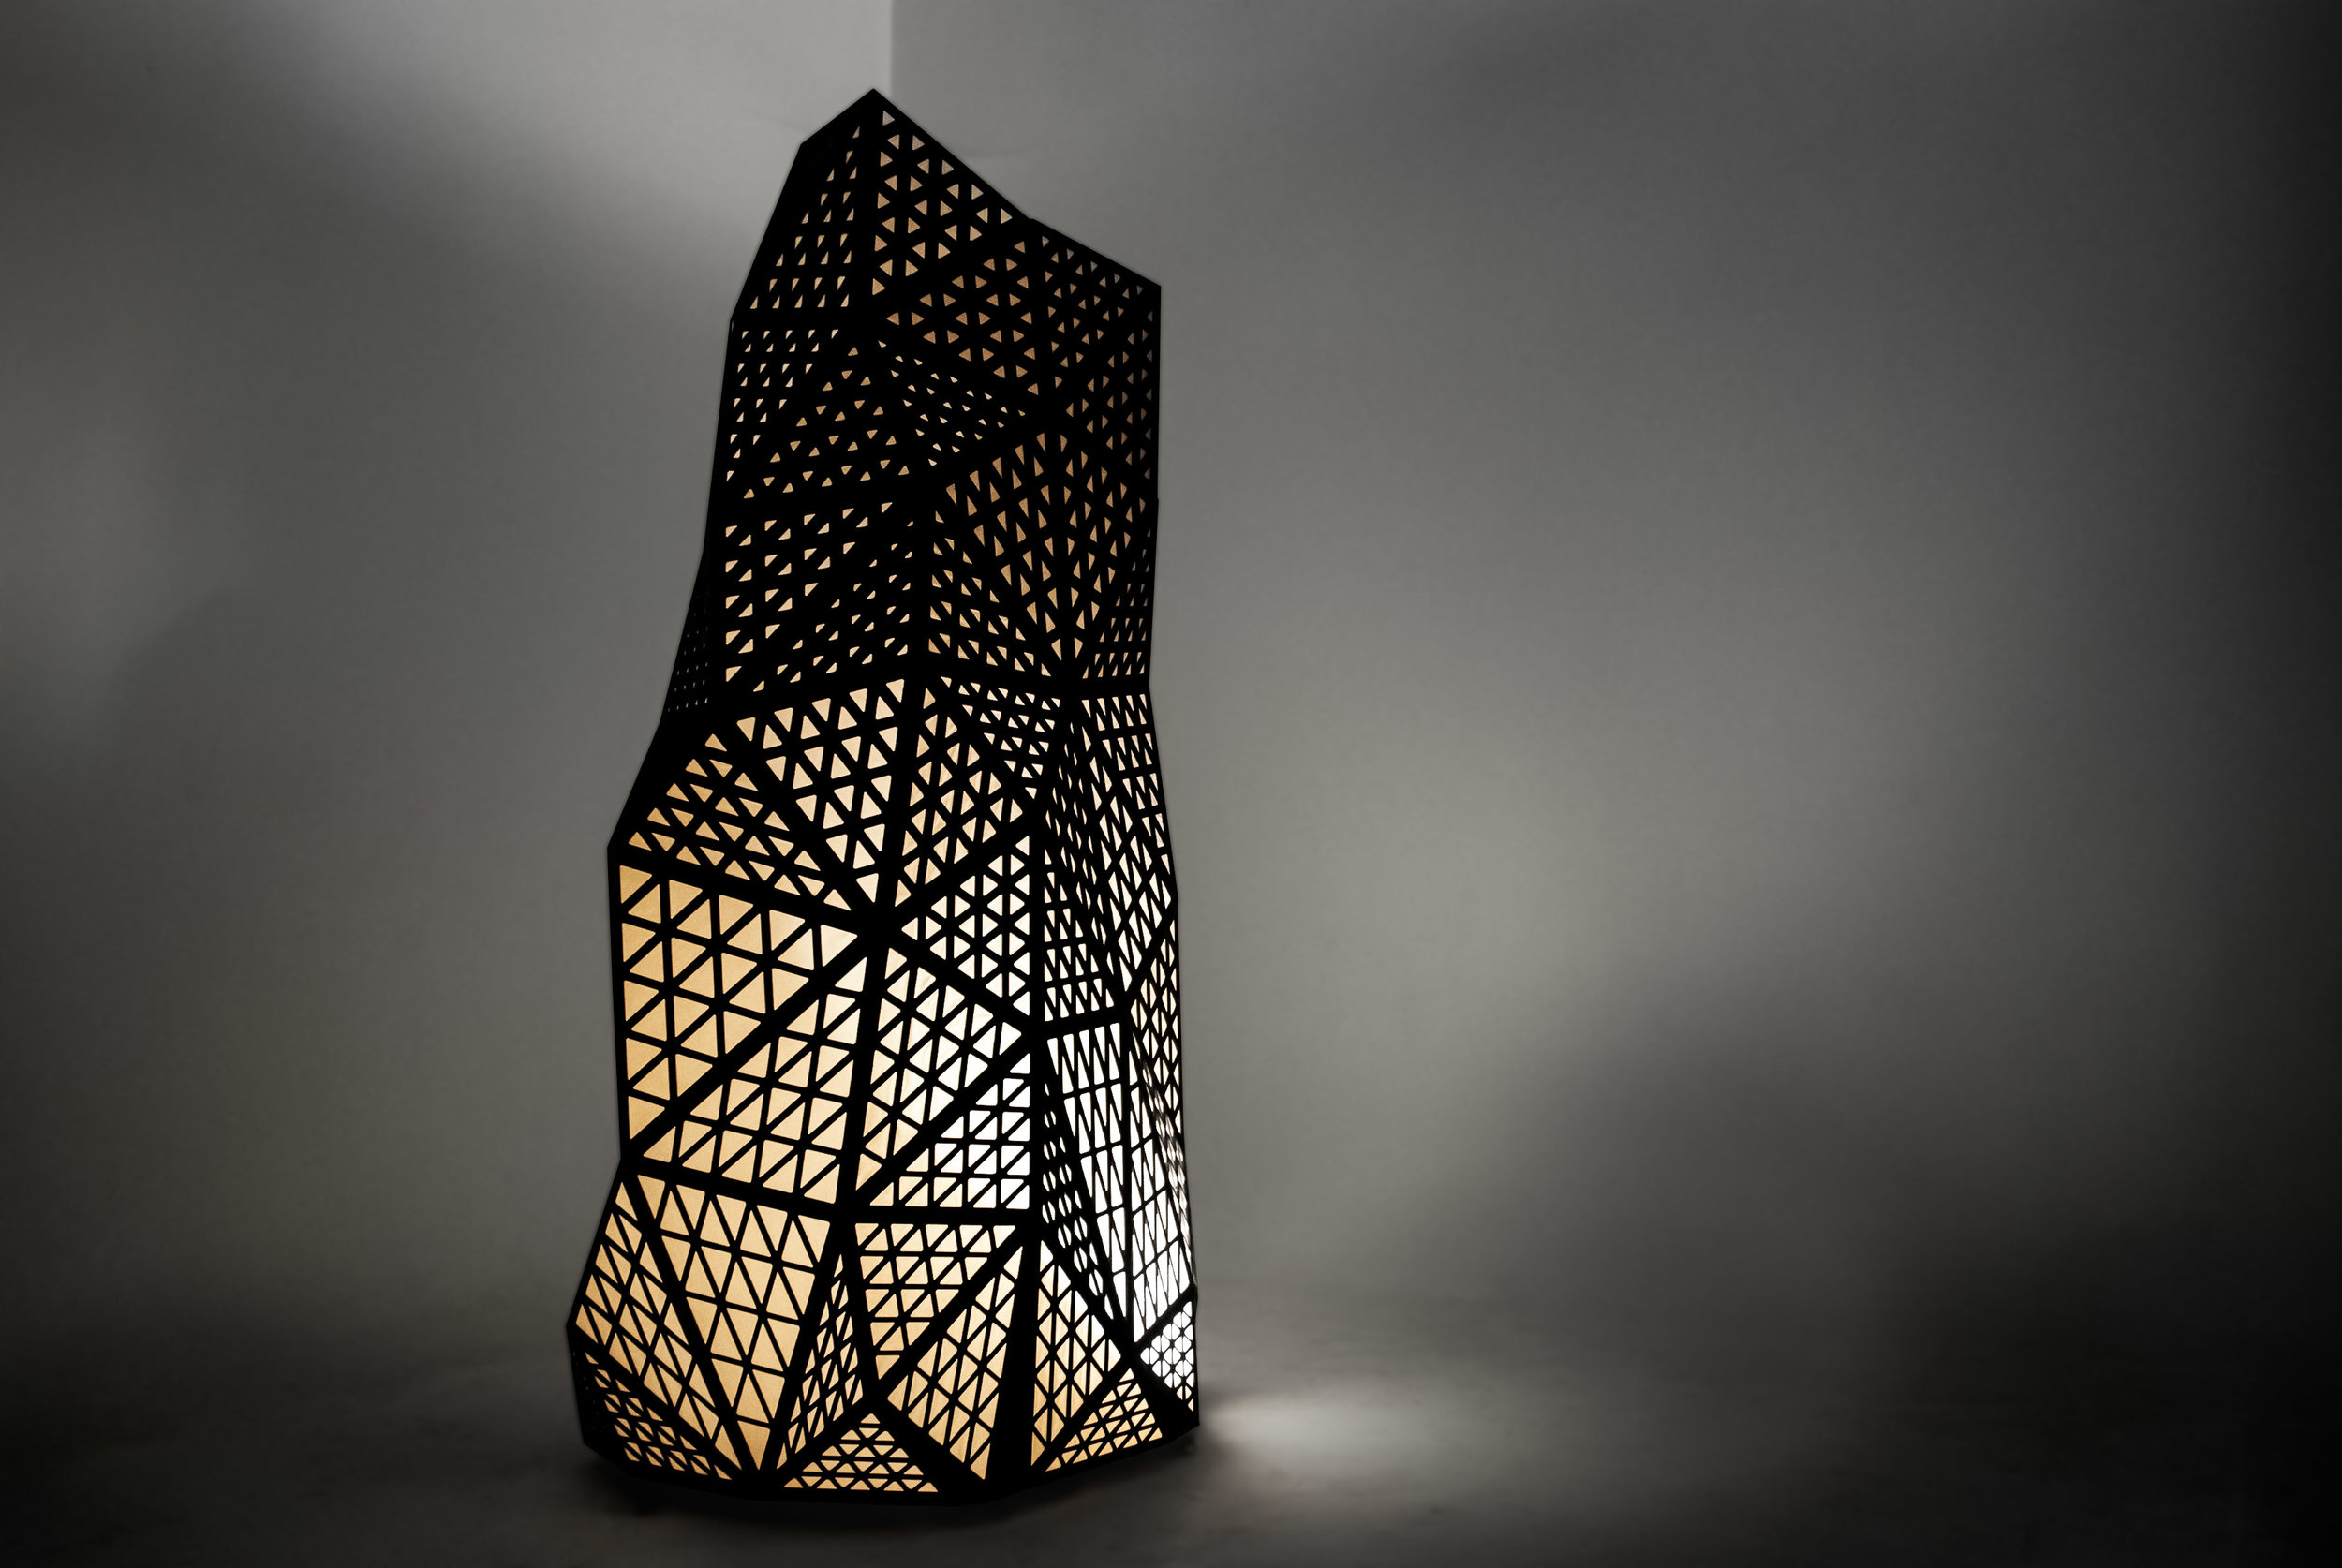 """Our proposal for an 8' tall geometric stalagmitic sculpture was chosen as one of four light-themed art installations featured at the first ever """"Light Up The Hills"""" Event in West Hills, BC."""